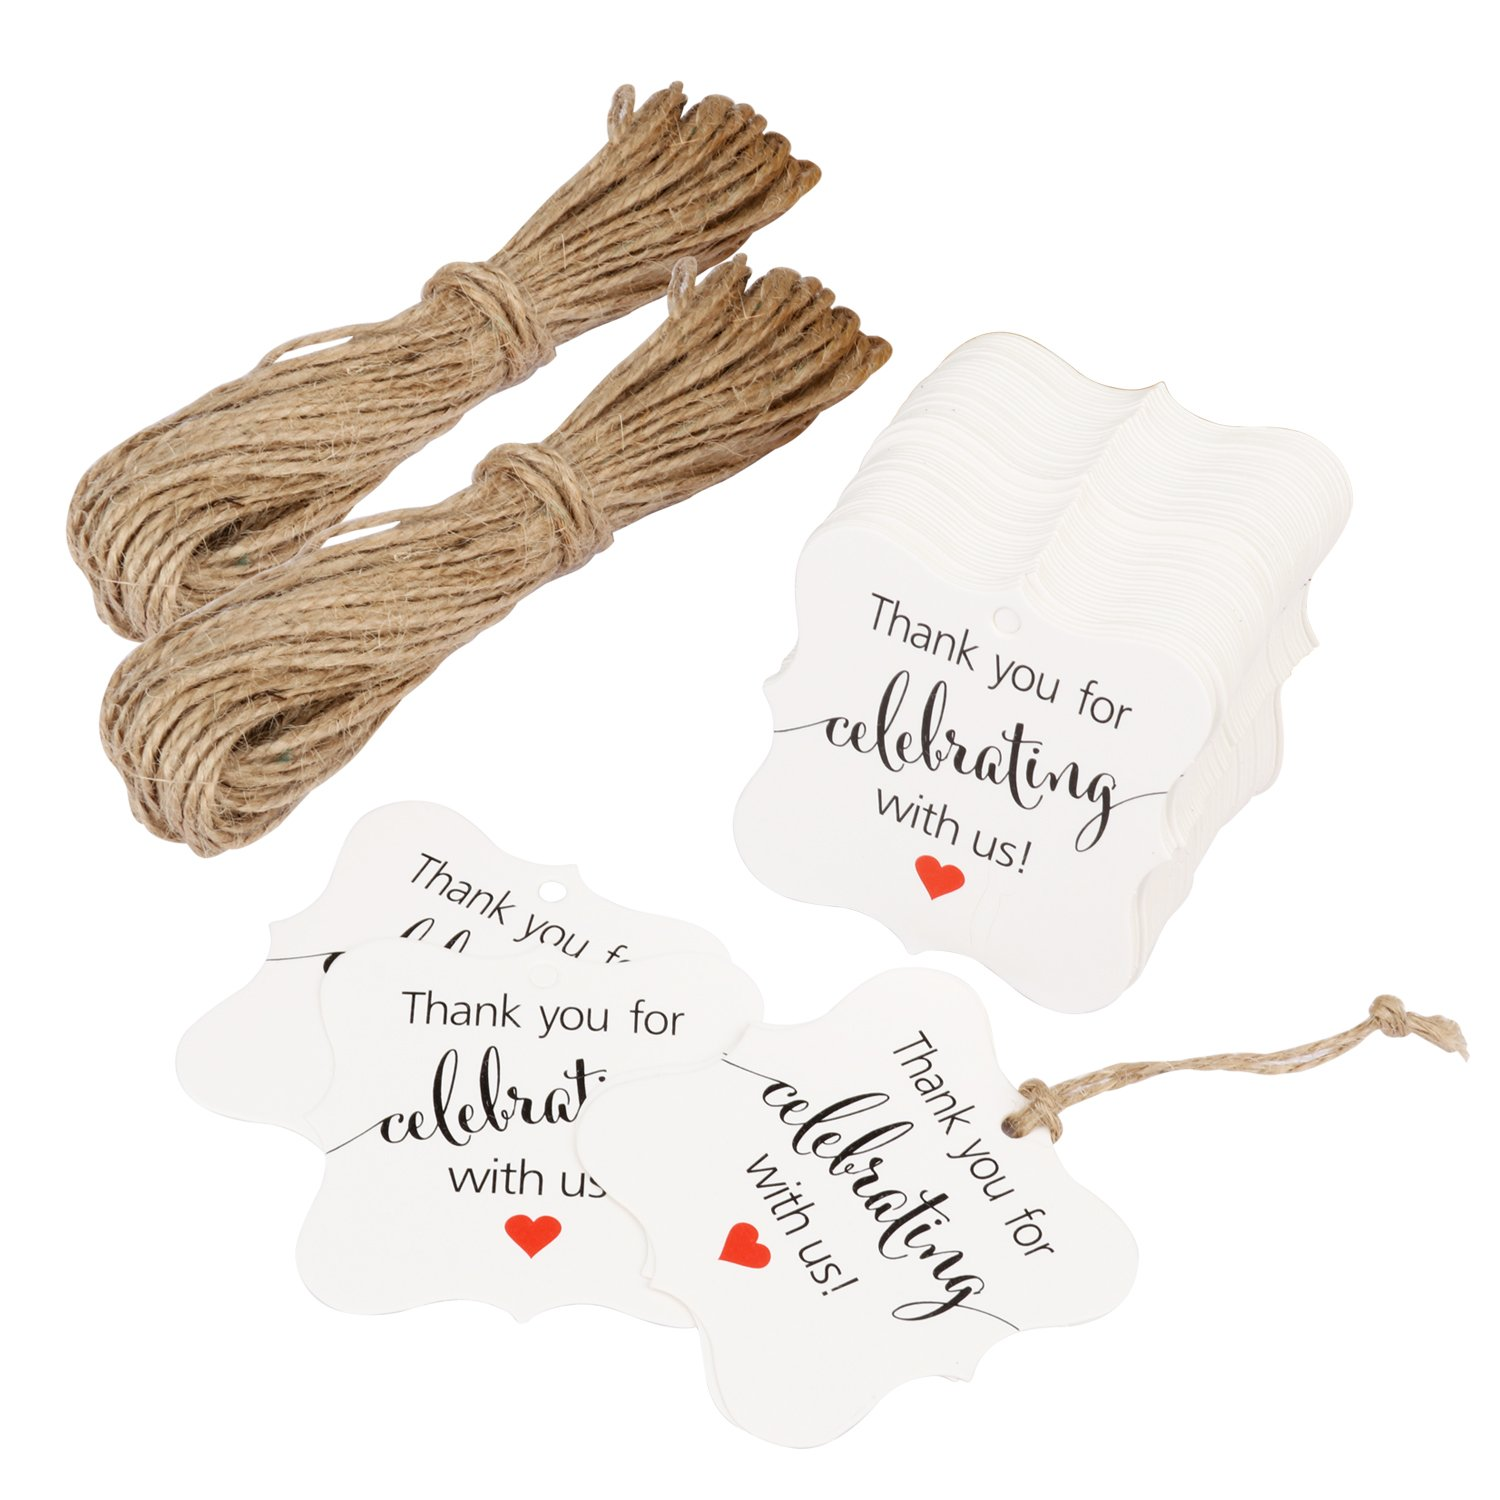 Aprince Paper Favor Gift Tags 100 PCS Thank You Tags Wedding Favor Gift Tags Thank You for Celebrating with Us White Square Tags with 20m Natural Jute Twine Perfect for Bridal Baby Shower Anniversary by Aprince (Image #8)